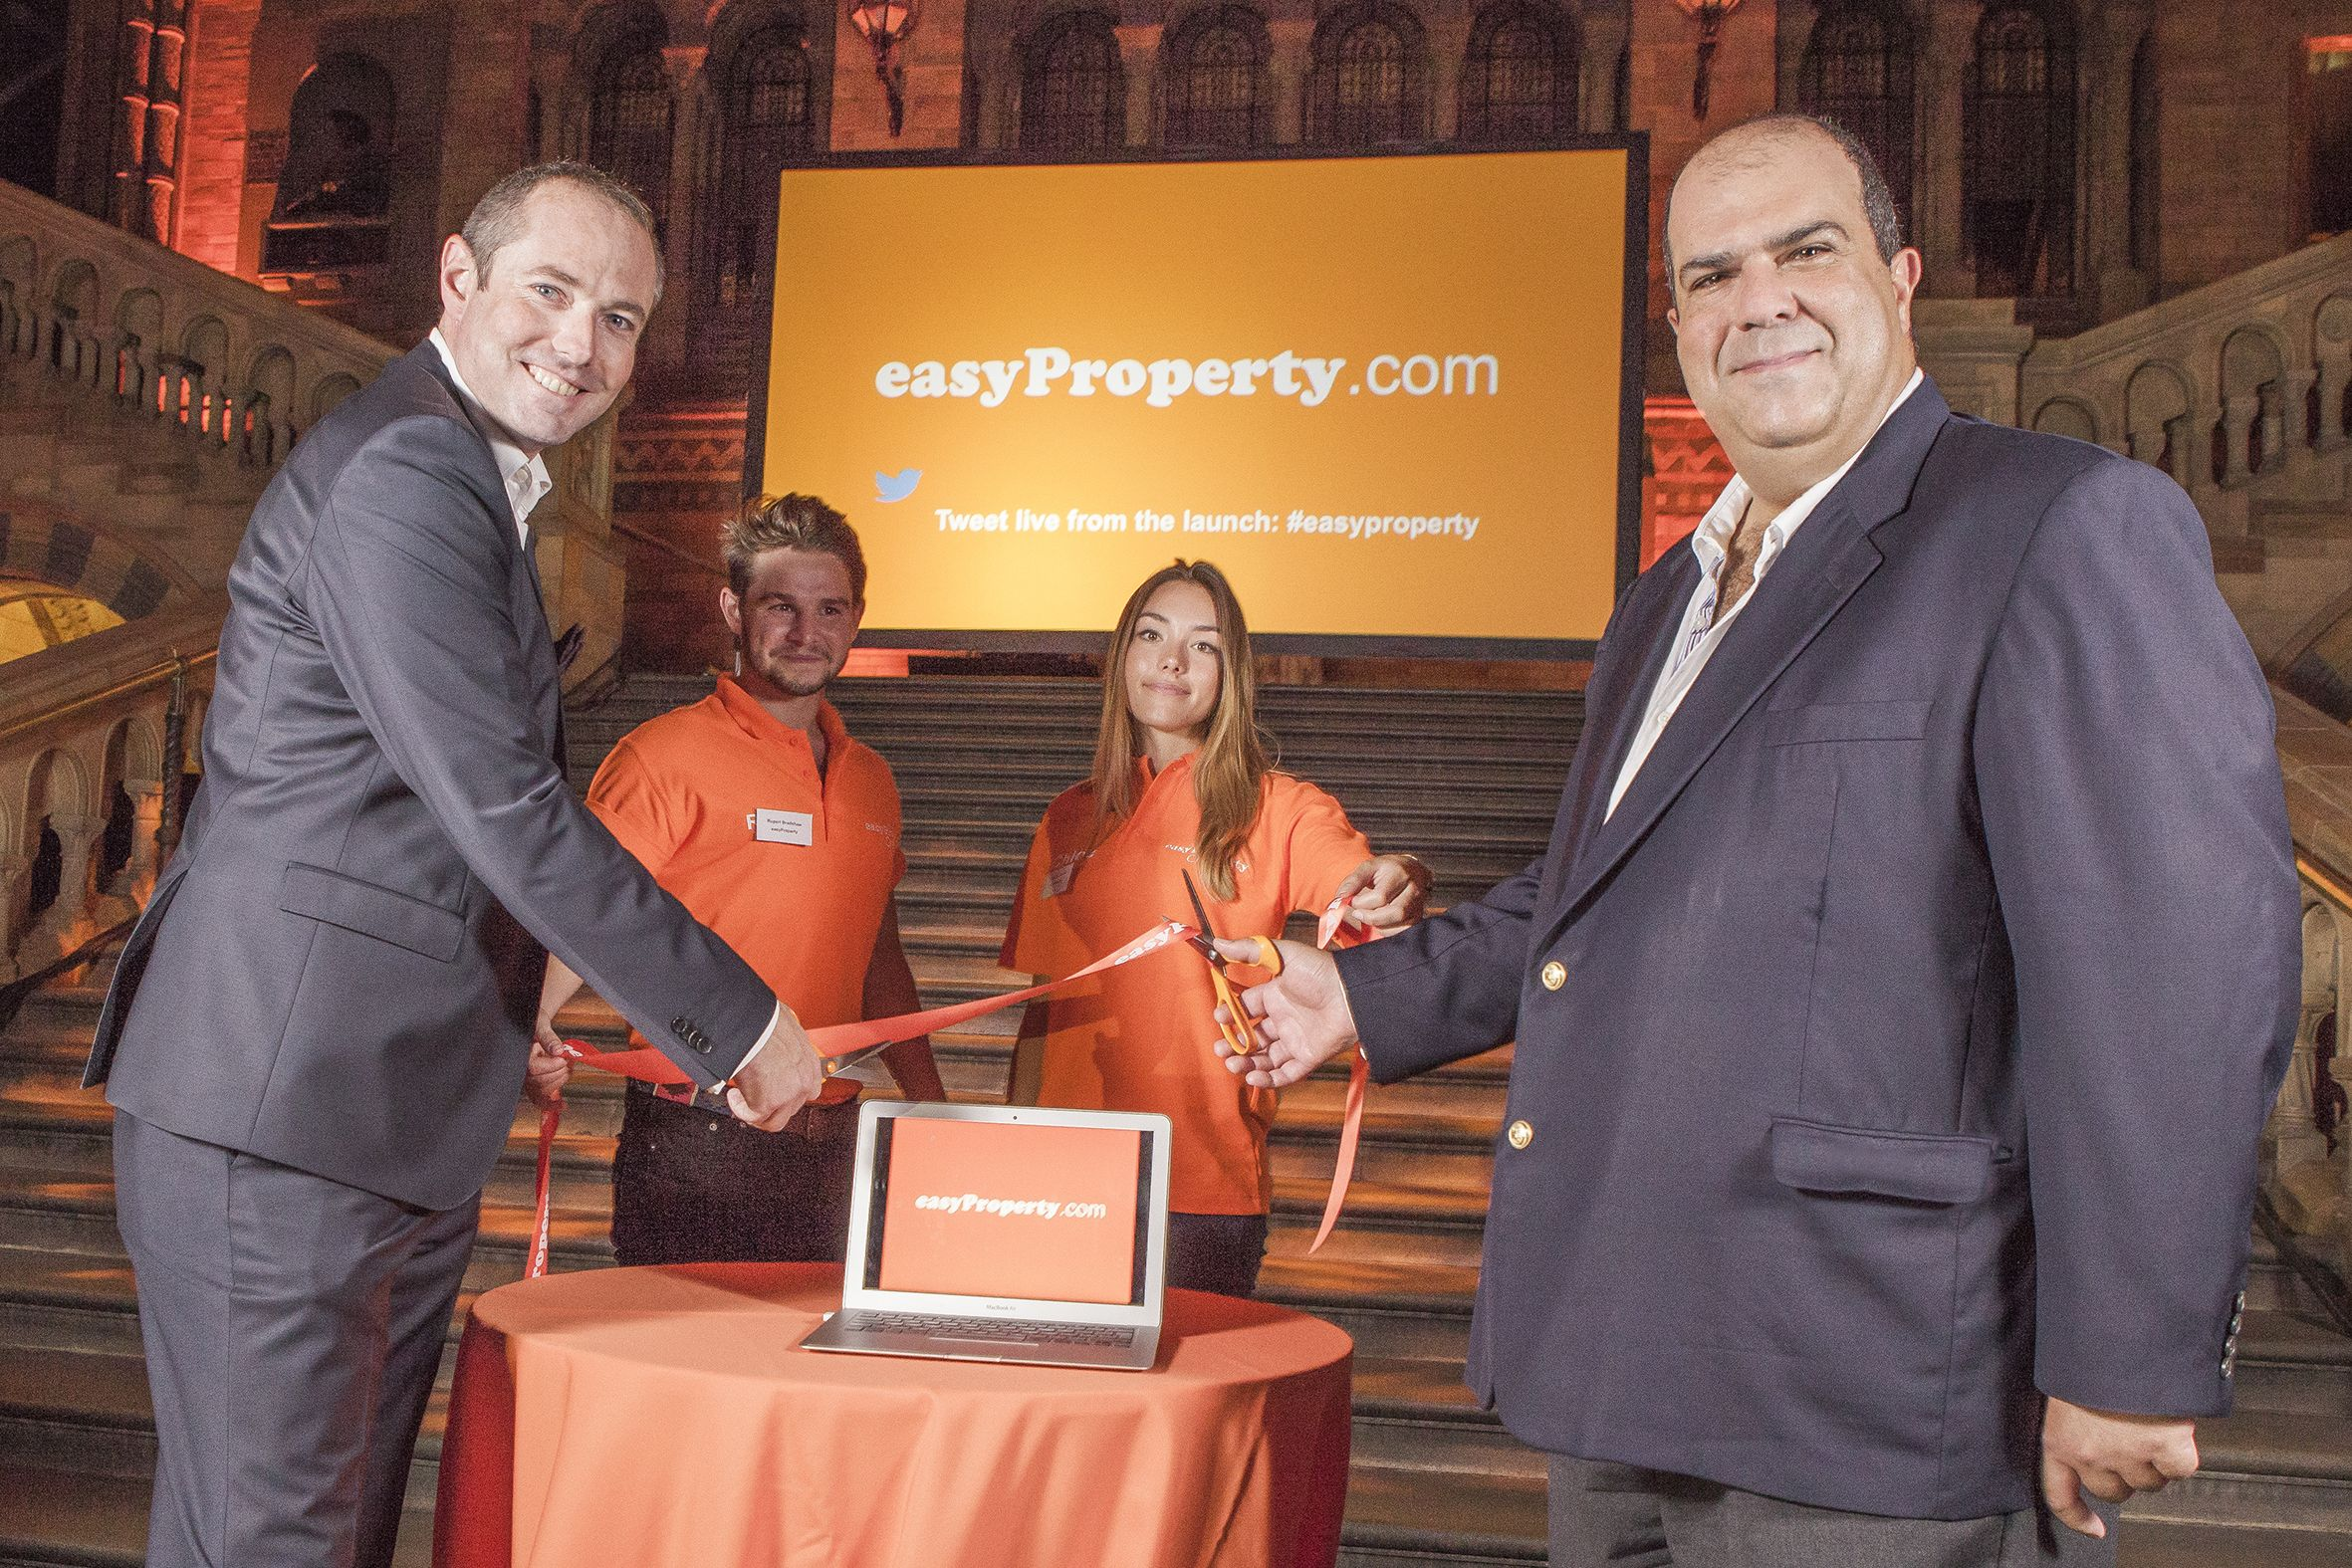 Leveraging the easyGroup branding to disrupt the property sector